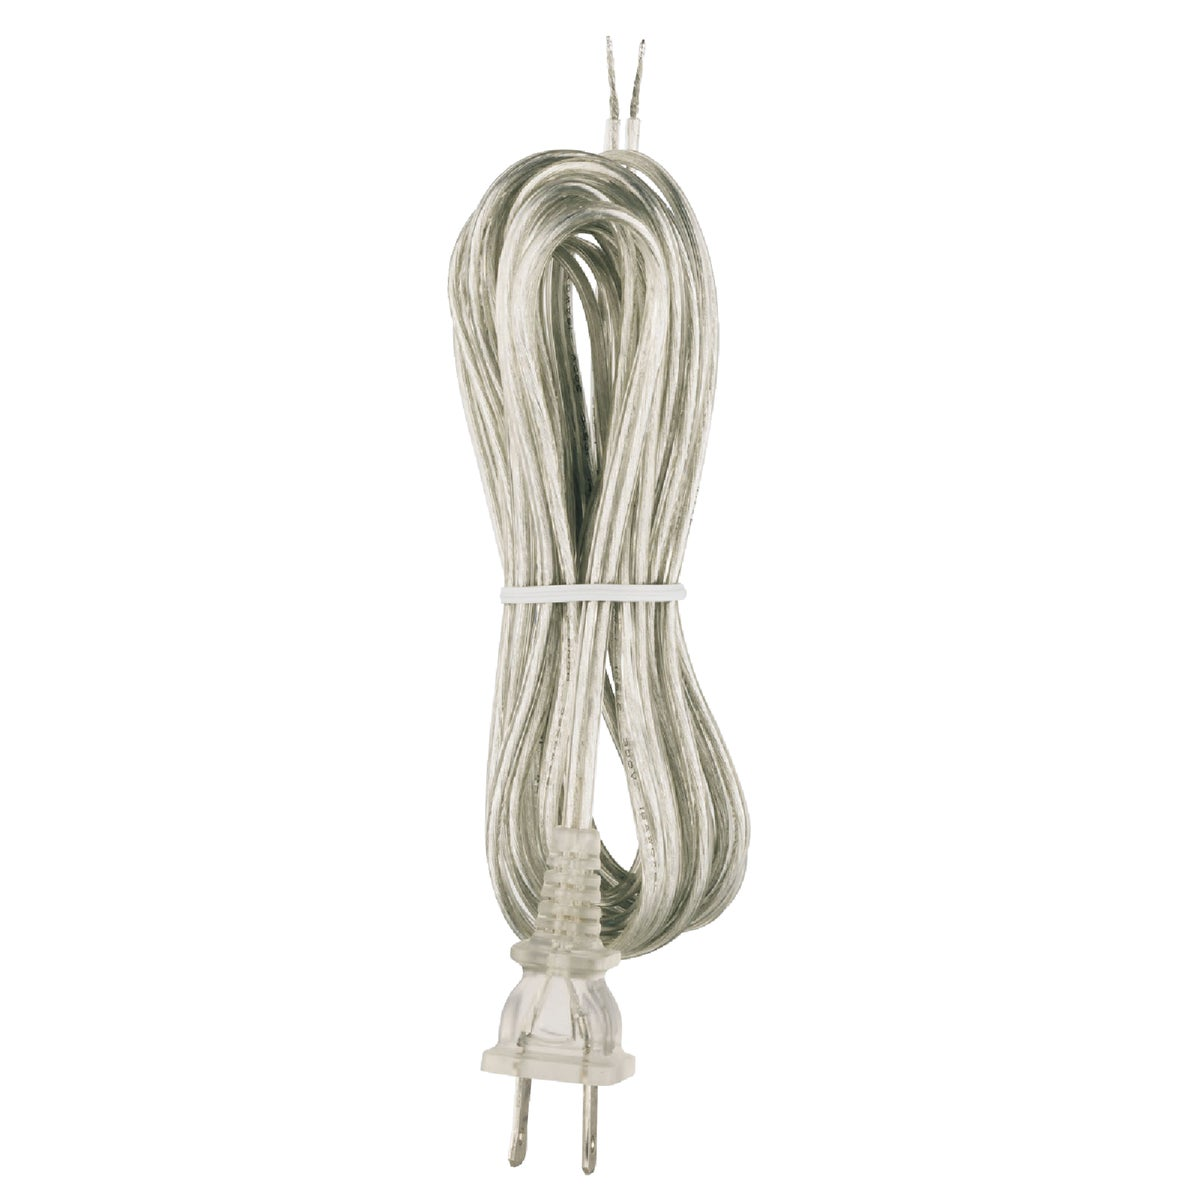 8' SLVR LAMP CORD - 70098 by Westinghouse Lightng